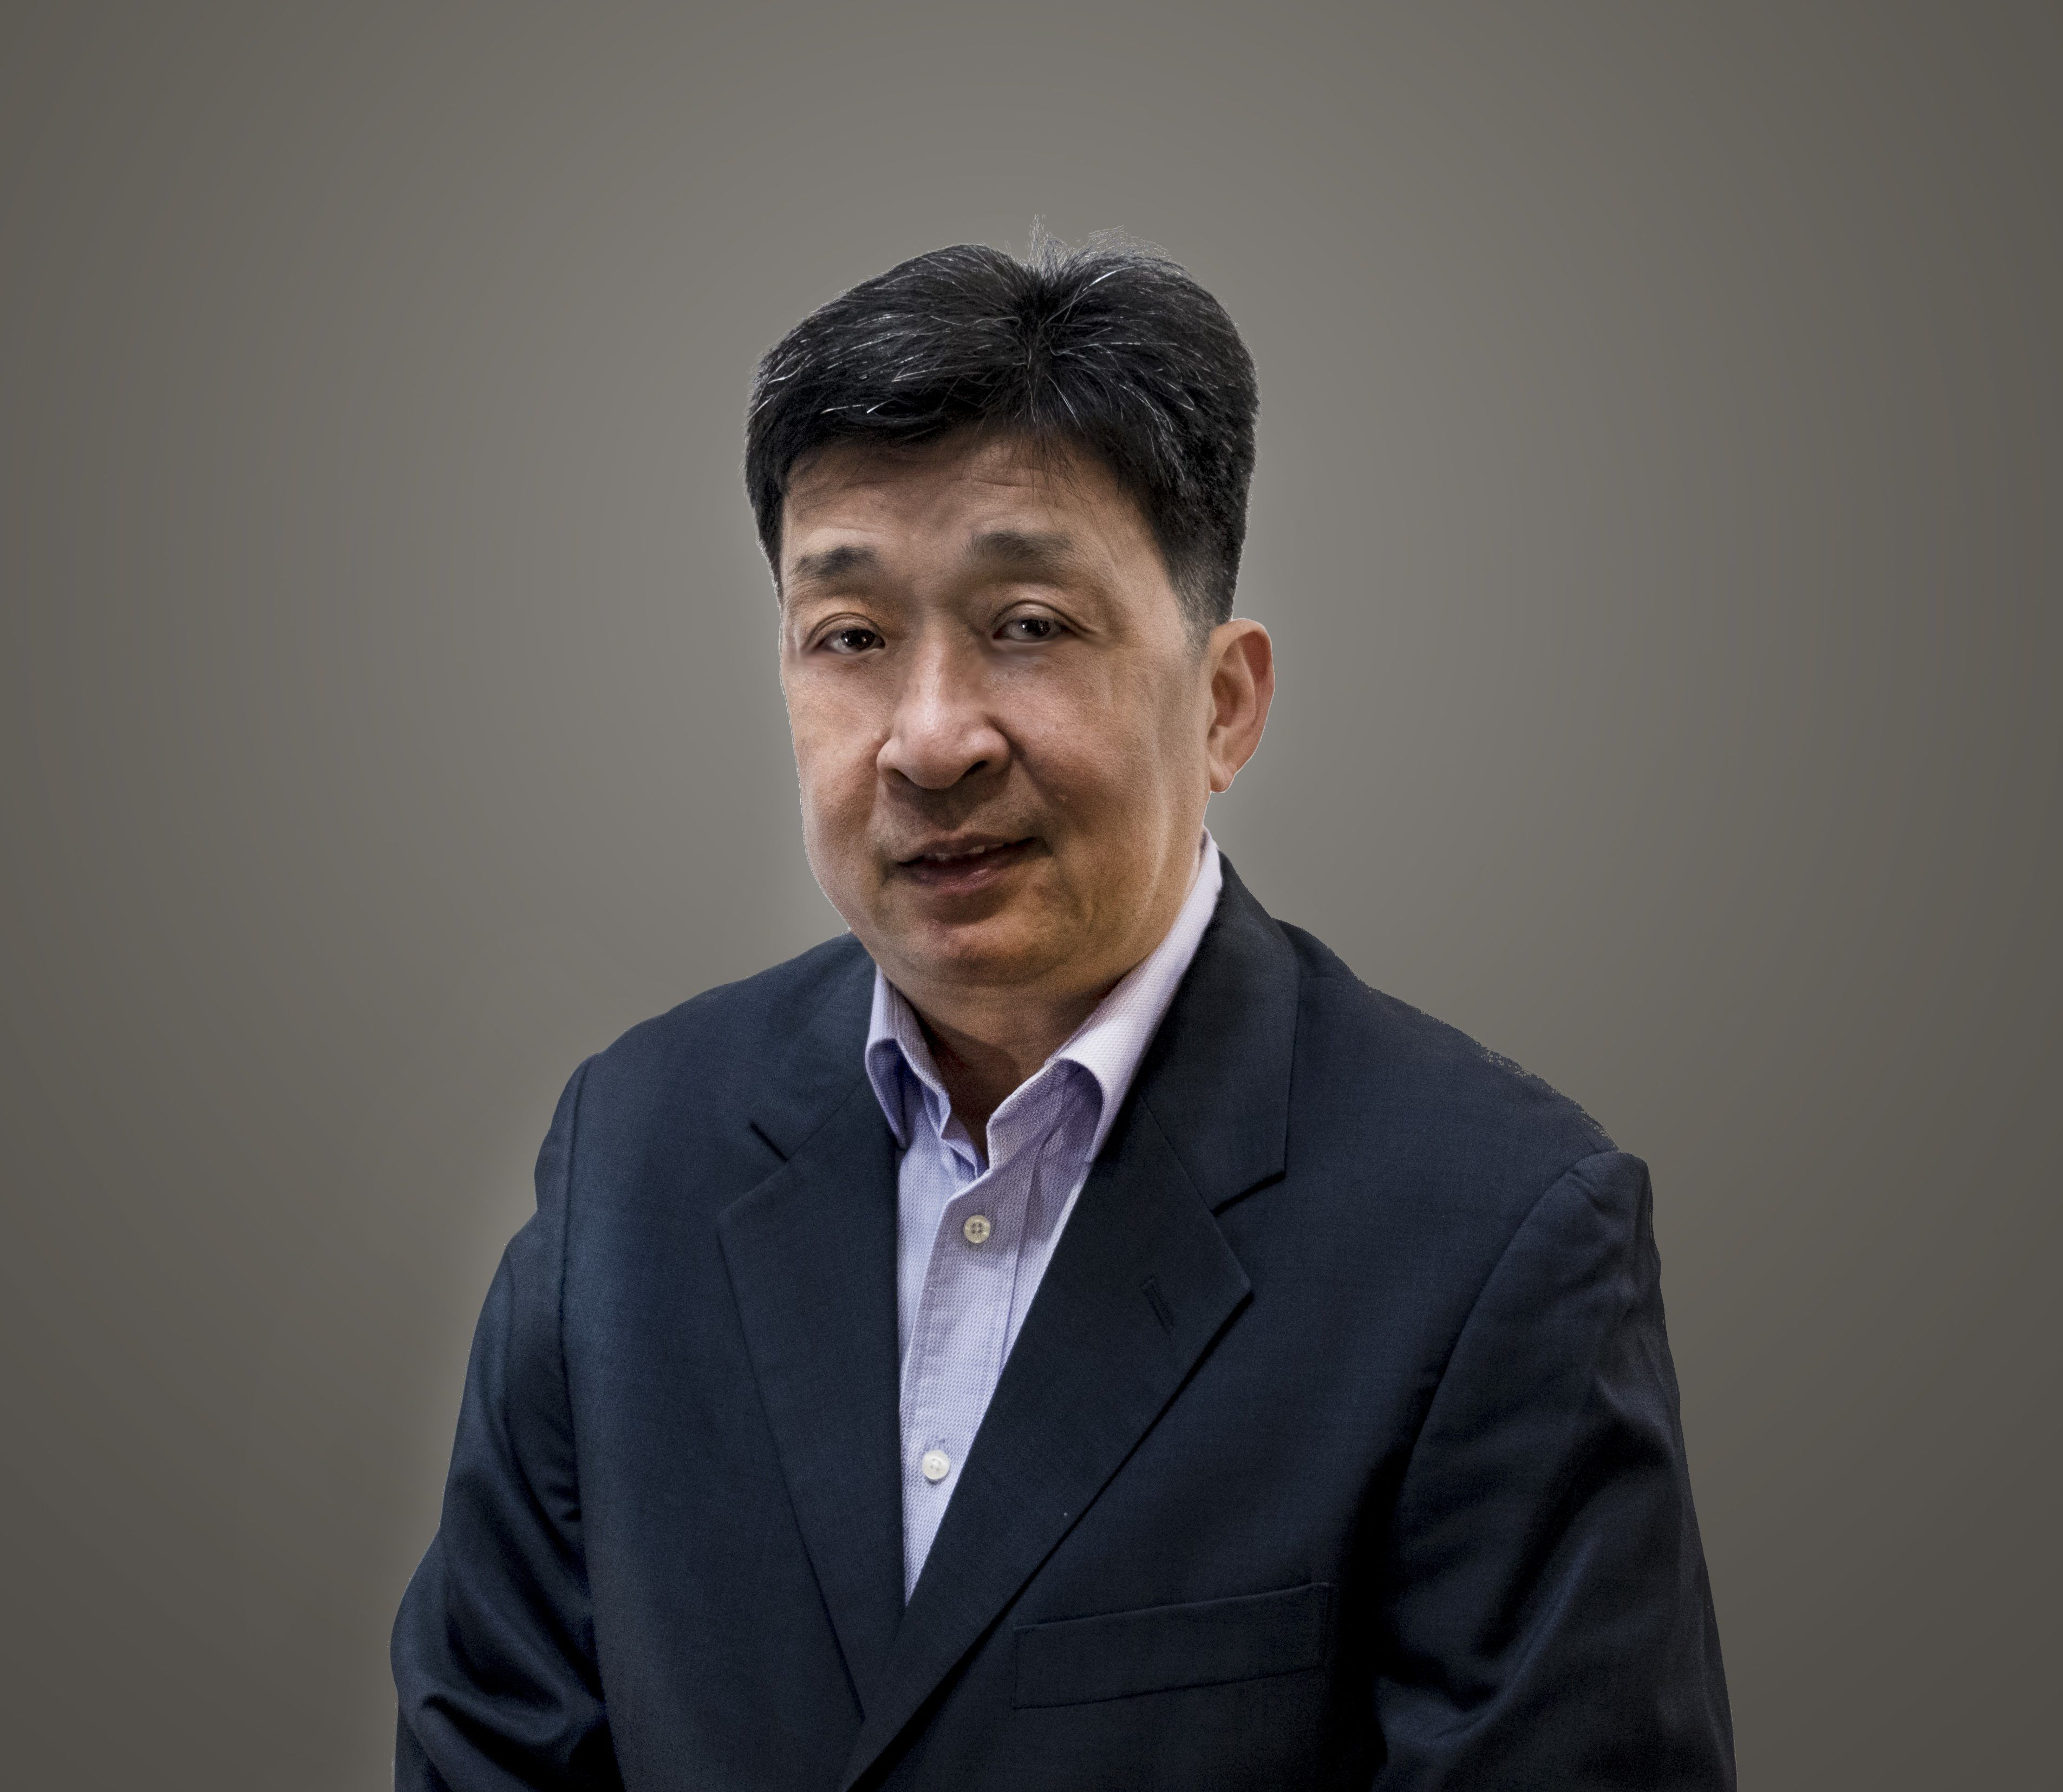 ANDY CHENG JOINS ROCCO AS REGIONAL DIRECTOR OF ASIA PACIFIC